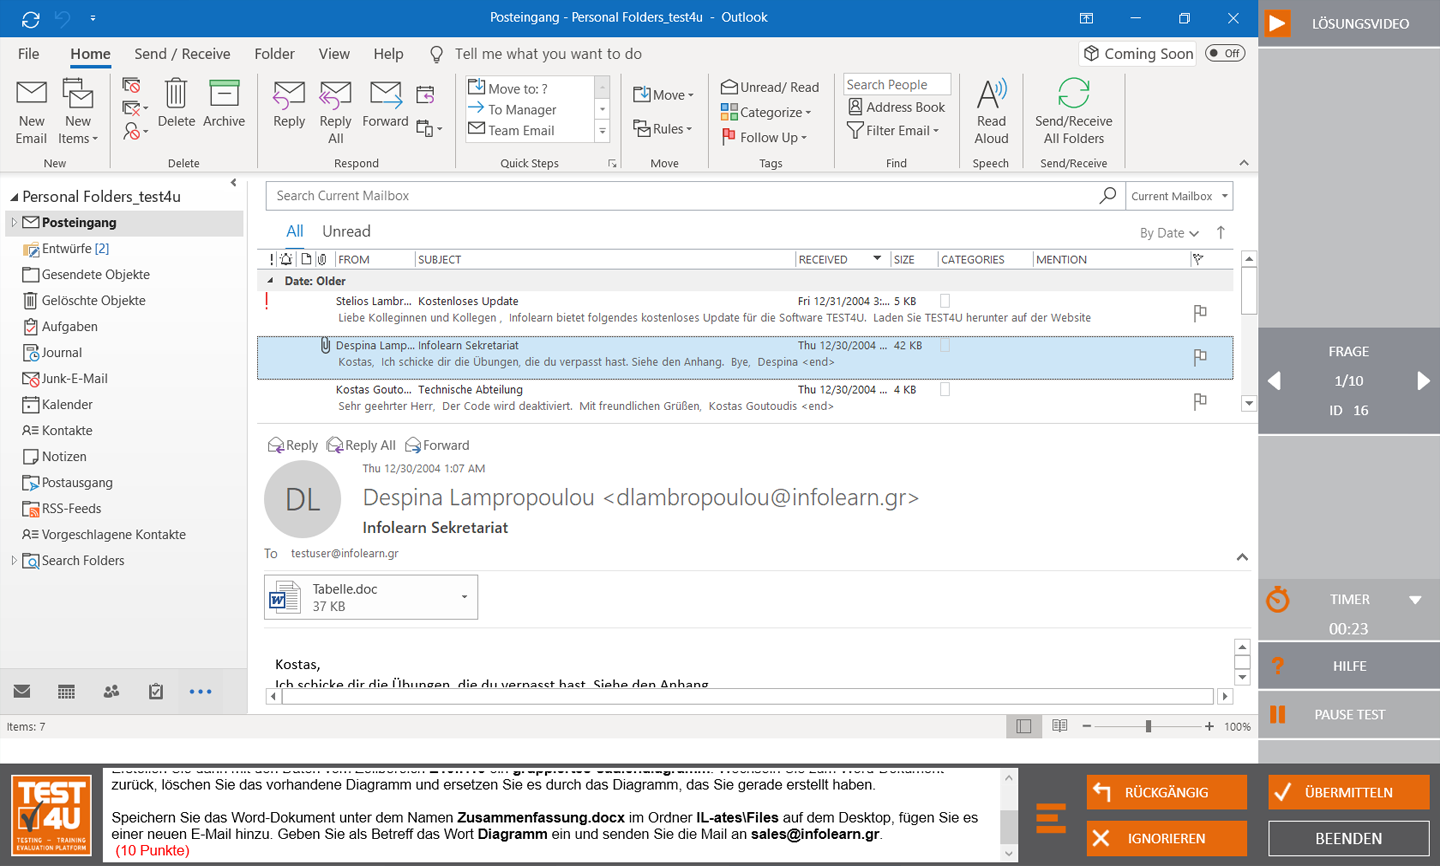 MO-400 Outlook Associate-Office 365 & Office 2019 - English version